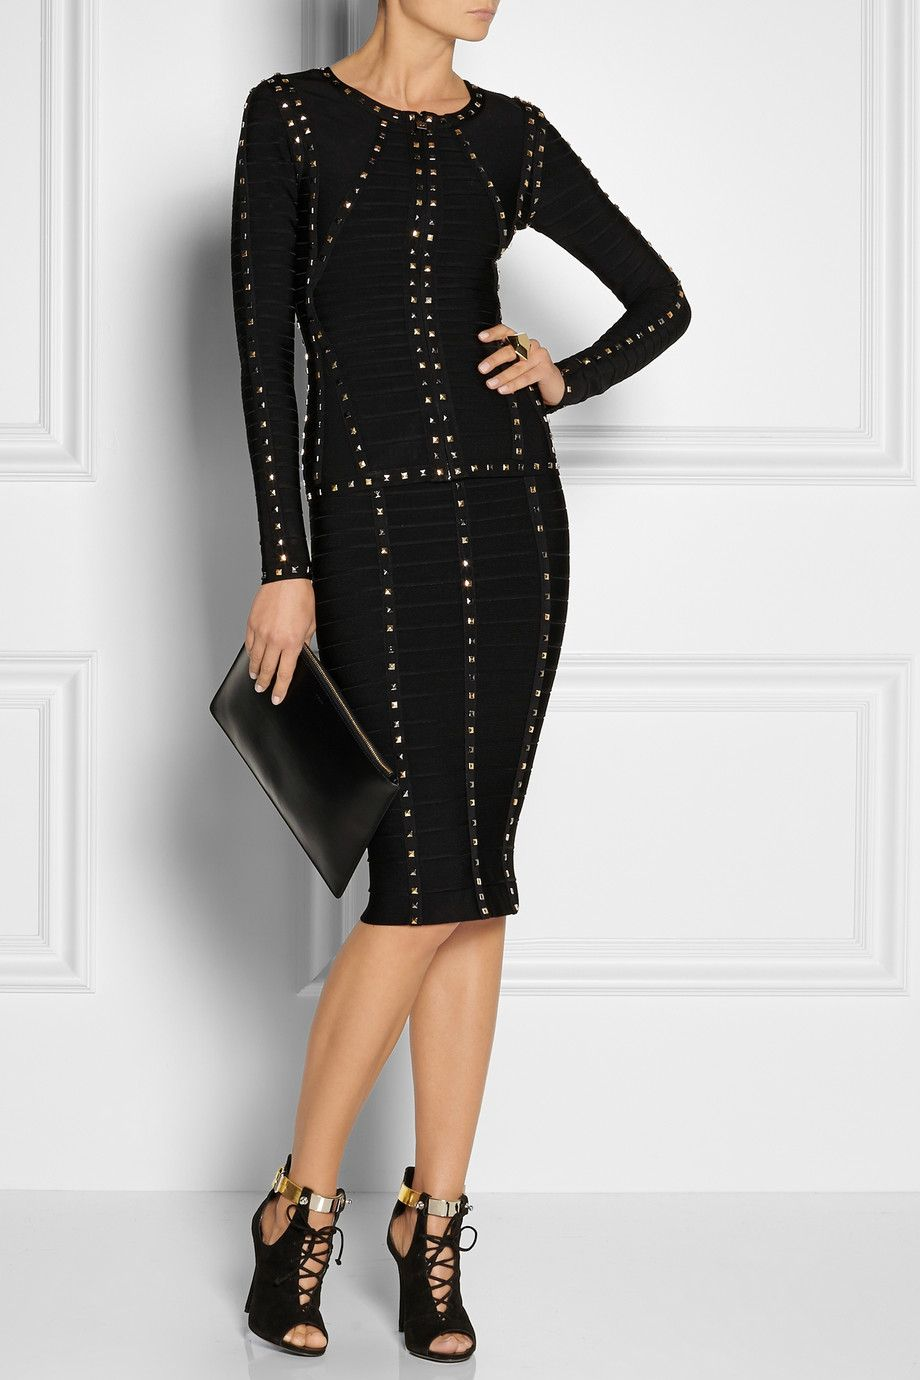 Herve leger black bandage jacket and skirt with rhodium and gold